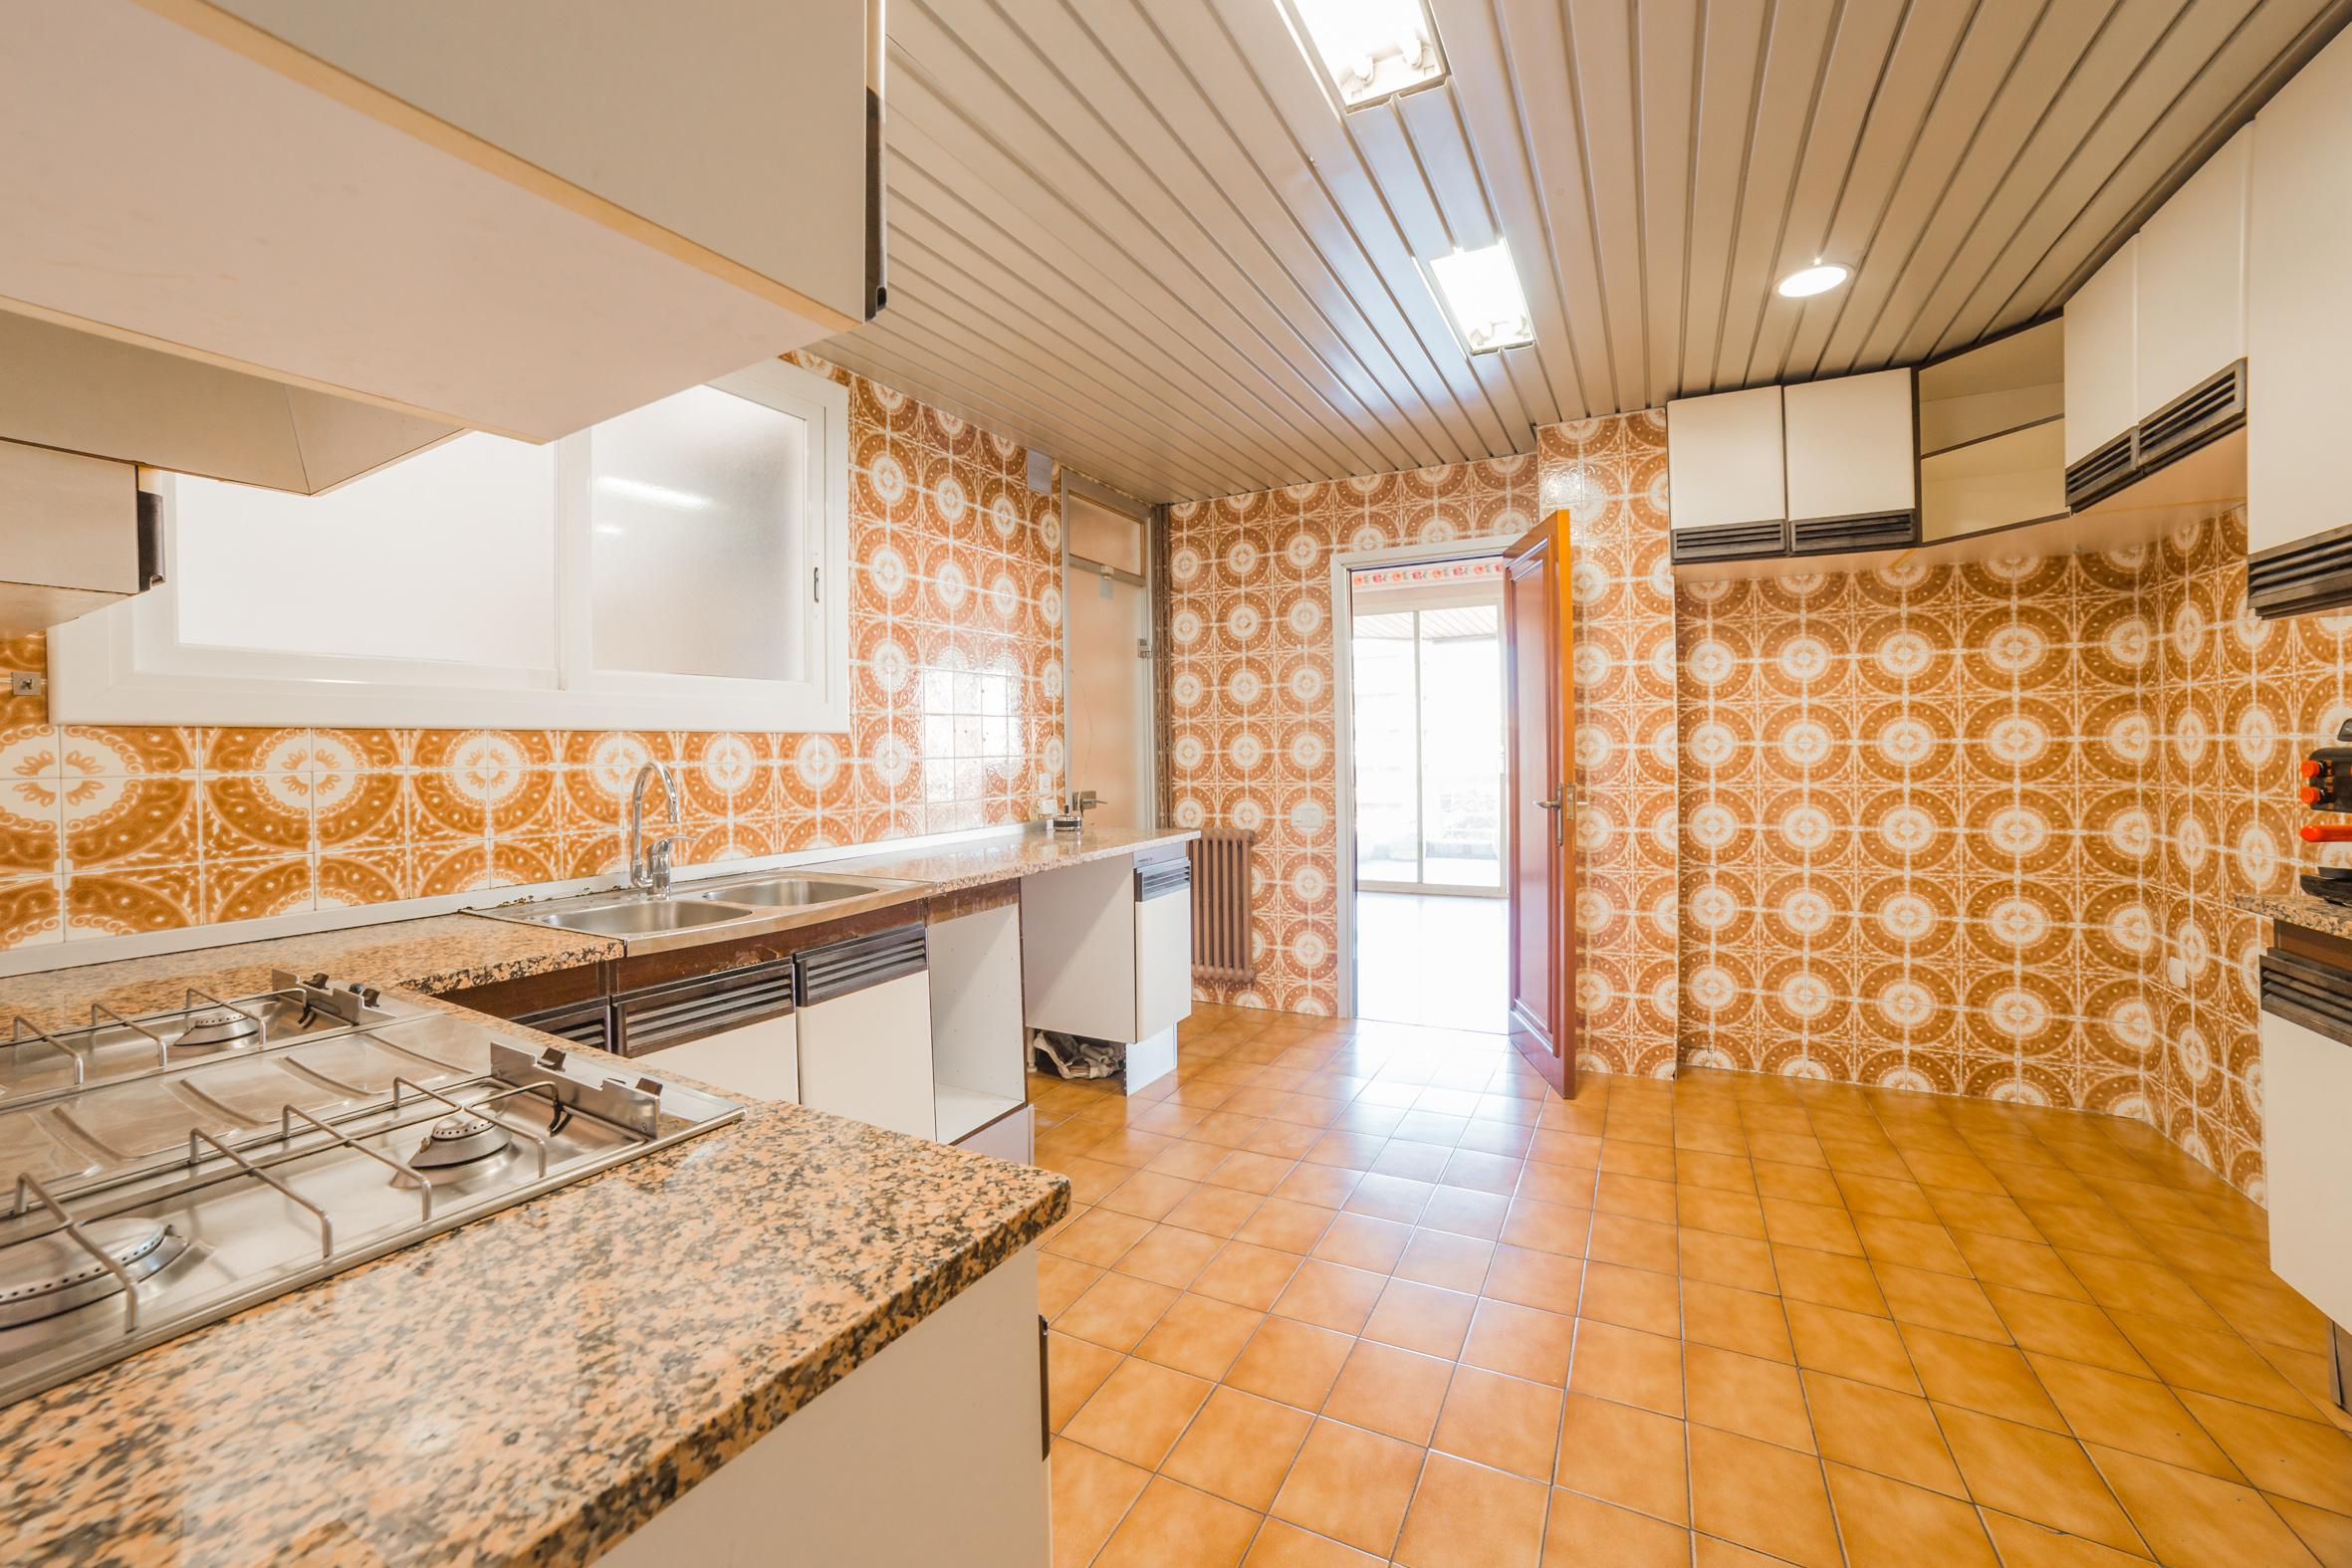 248988 Flat for sale in Les Corts, Les Corts 14